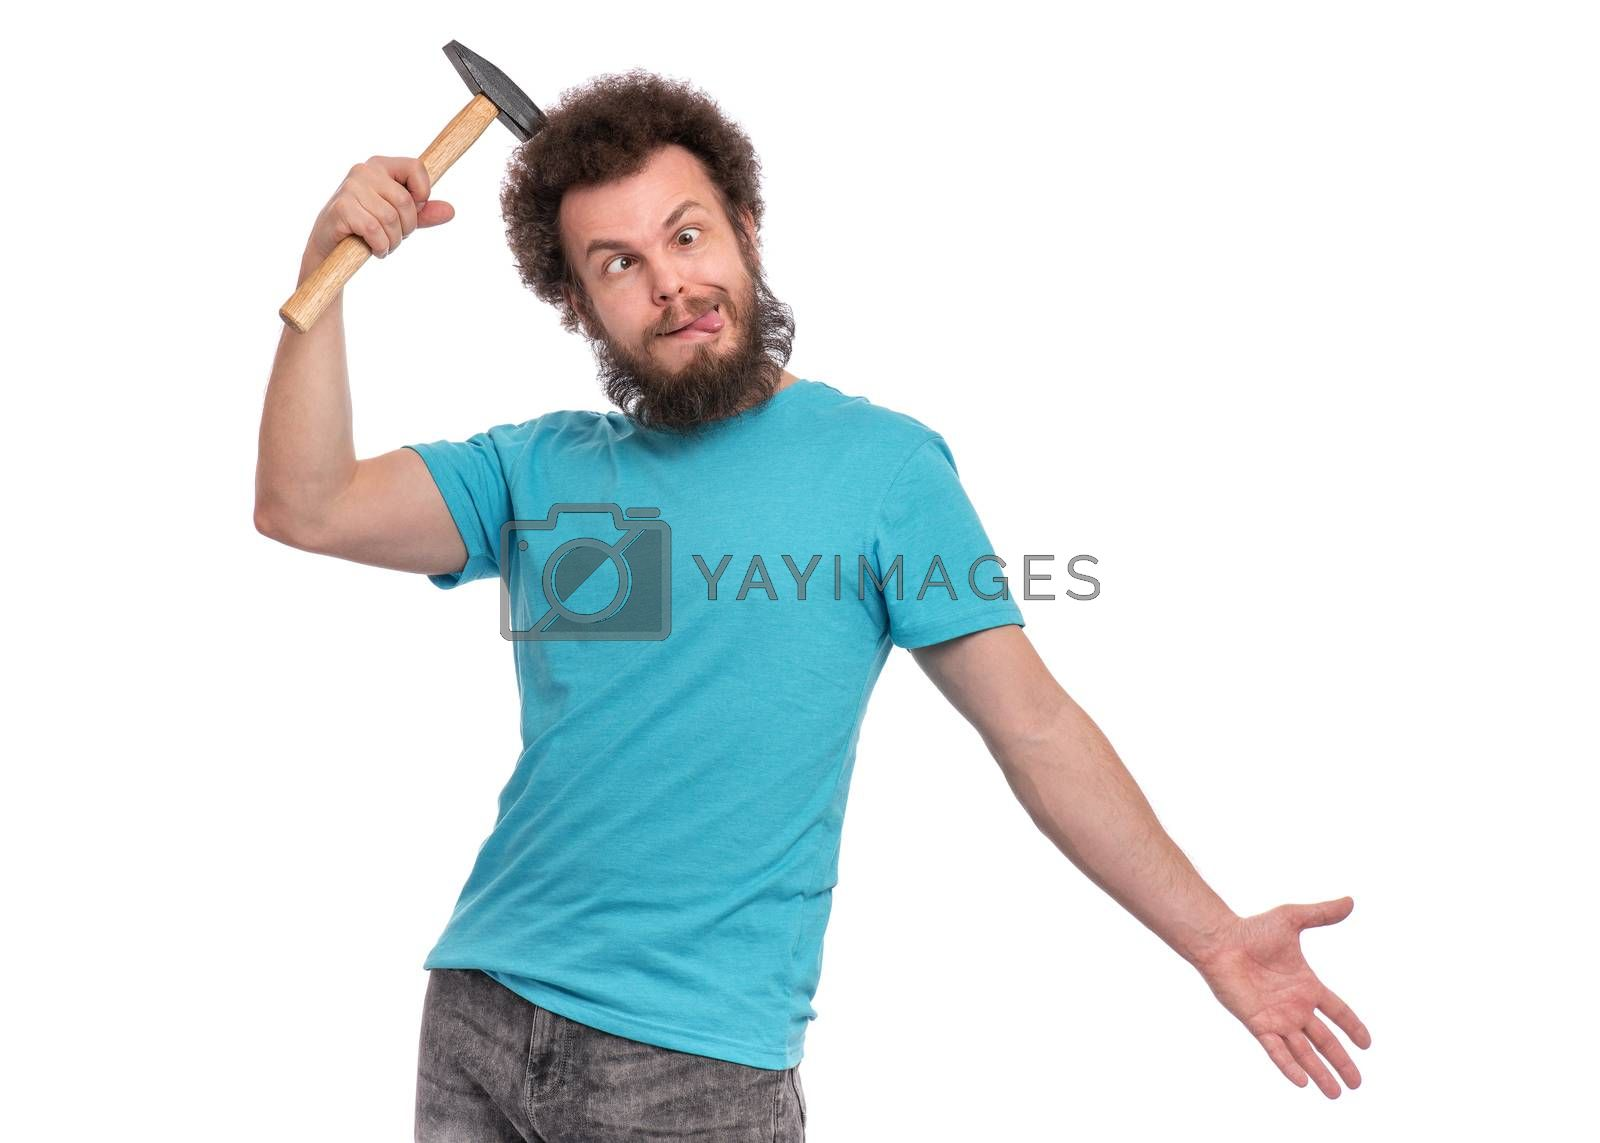 Crazy bearded Man is hitting him self in head with Hammer and making grimace - Silly face. Guy with funny Curly Hair, isolated on white background. Emotions, and signs concept.